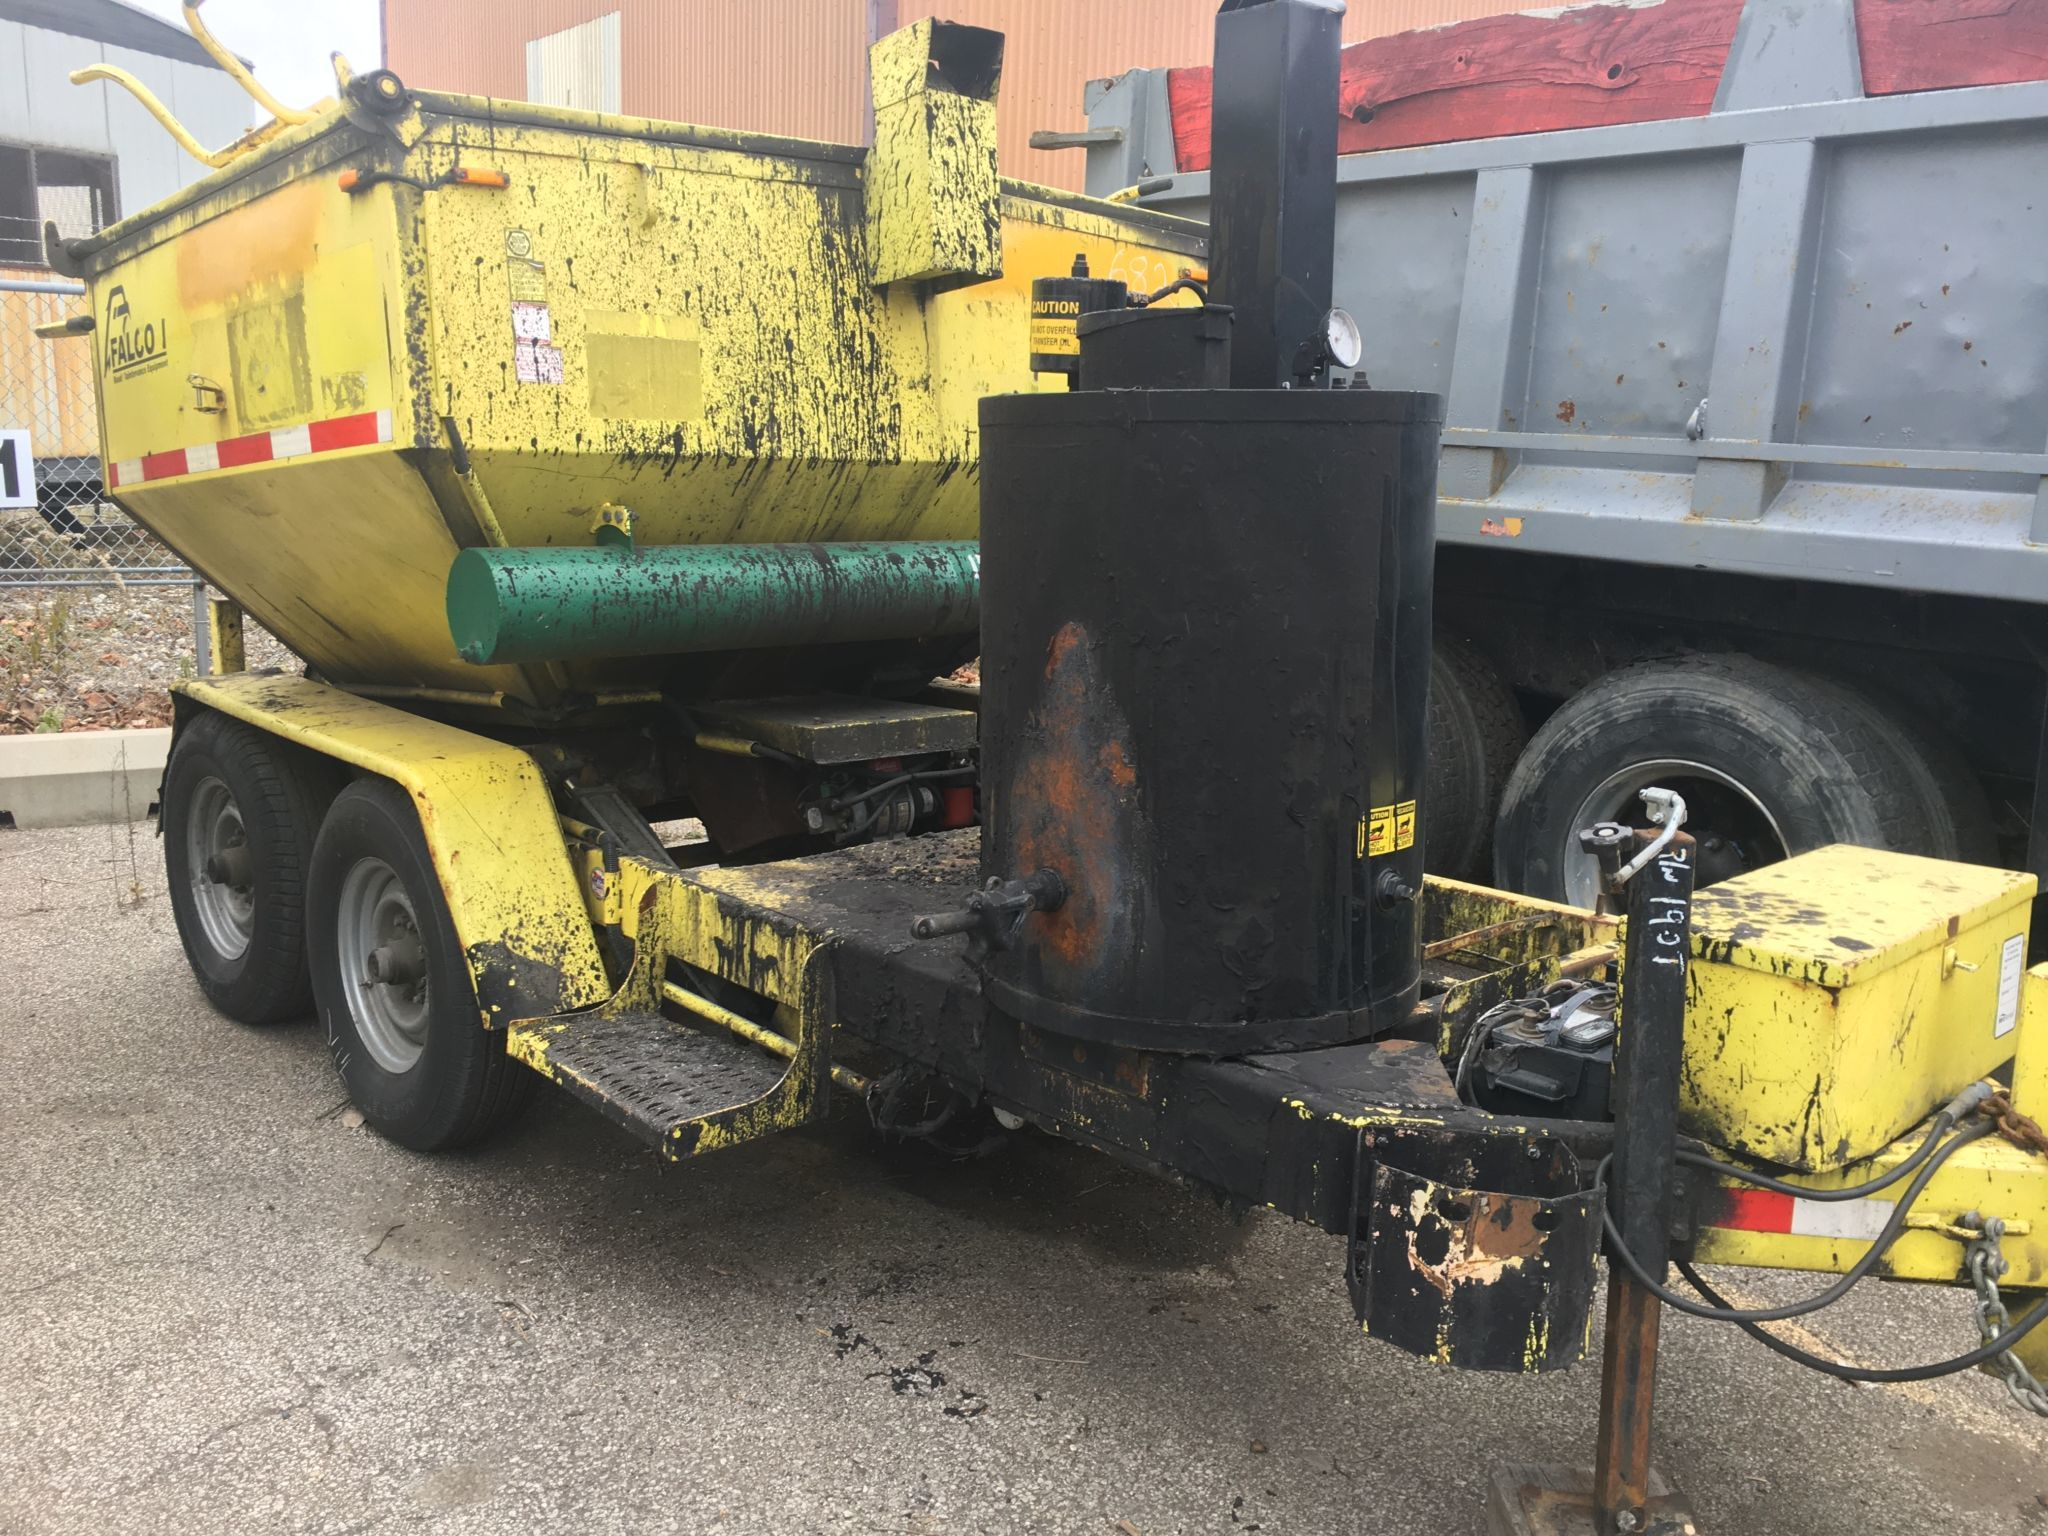 Forklifts,pull behind diesel compressors, asphalt hot pot trailers, box trucks